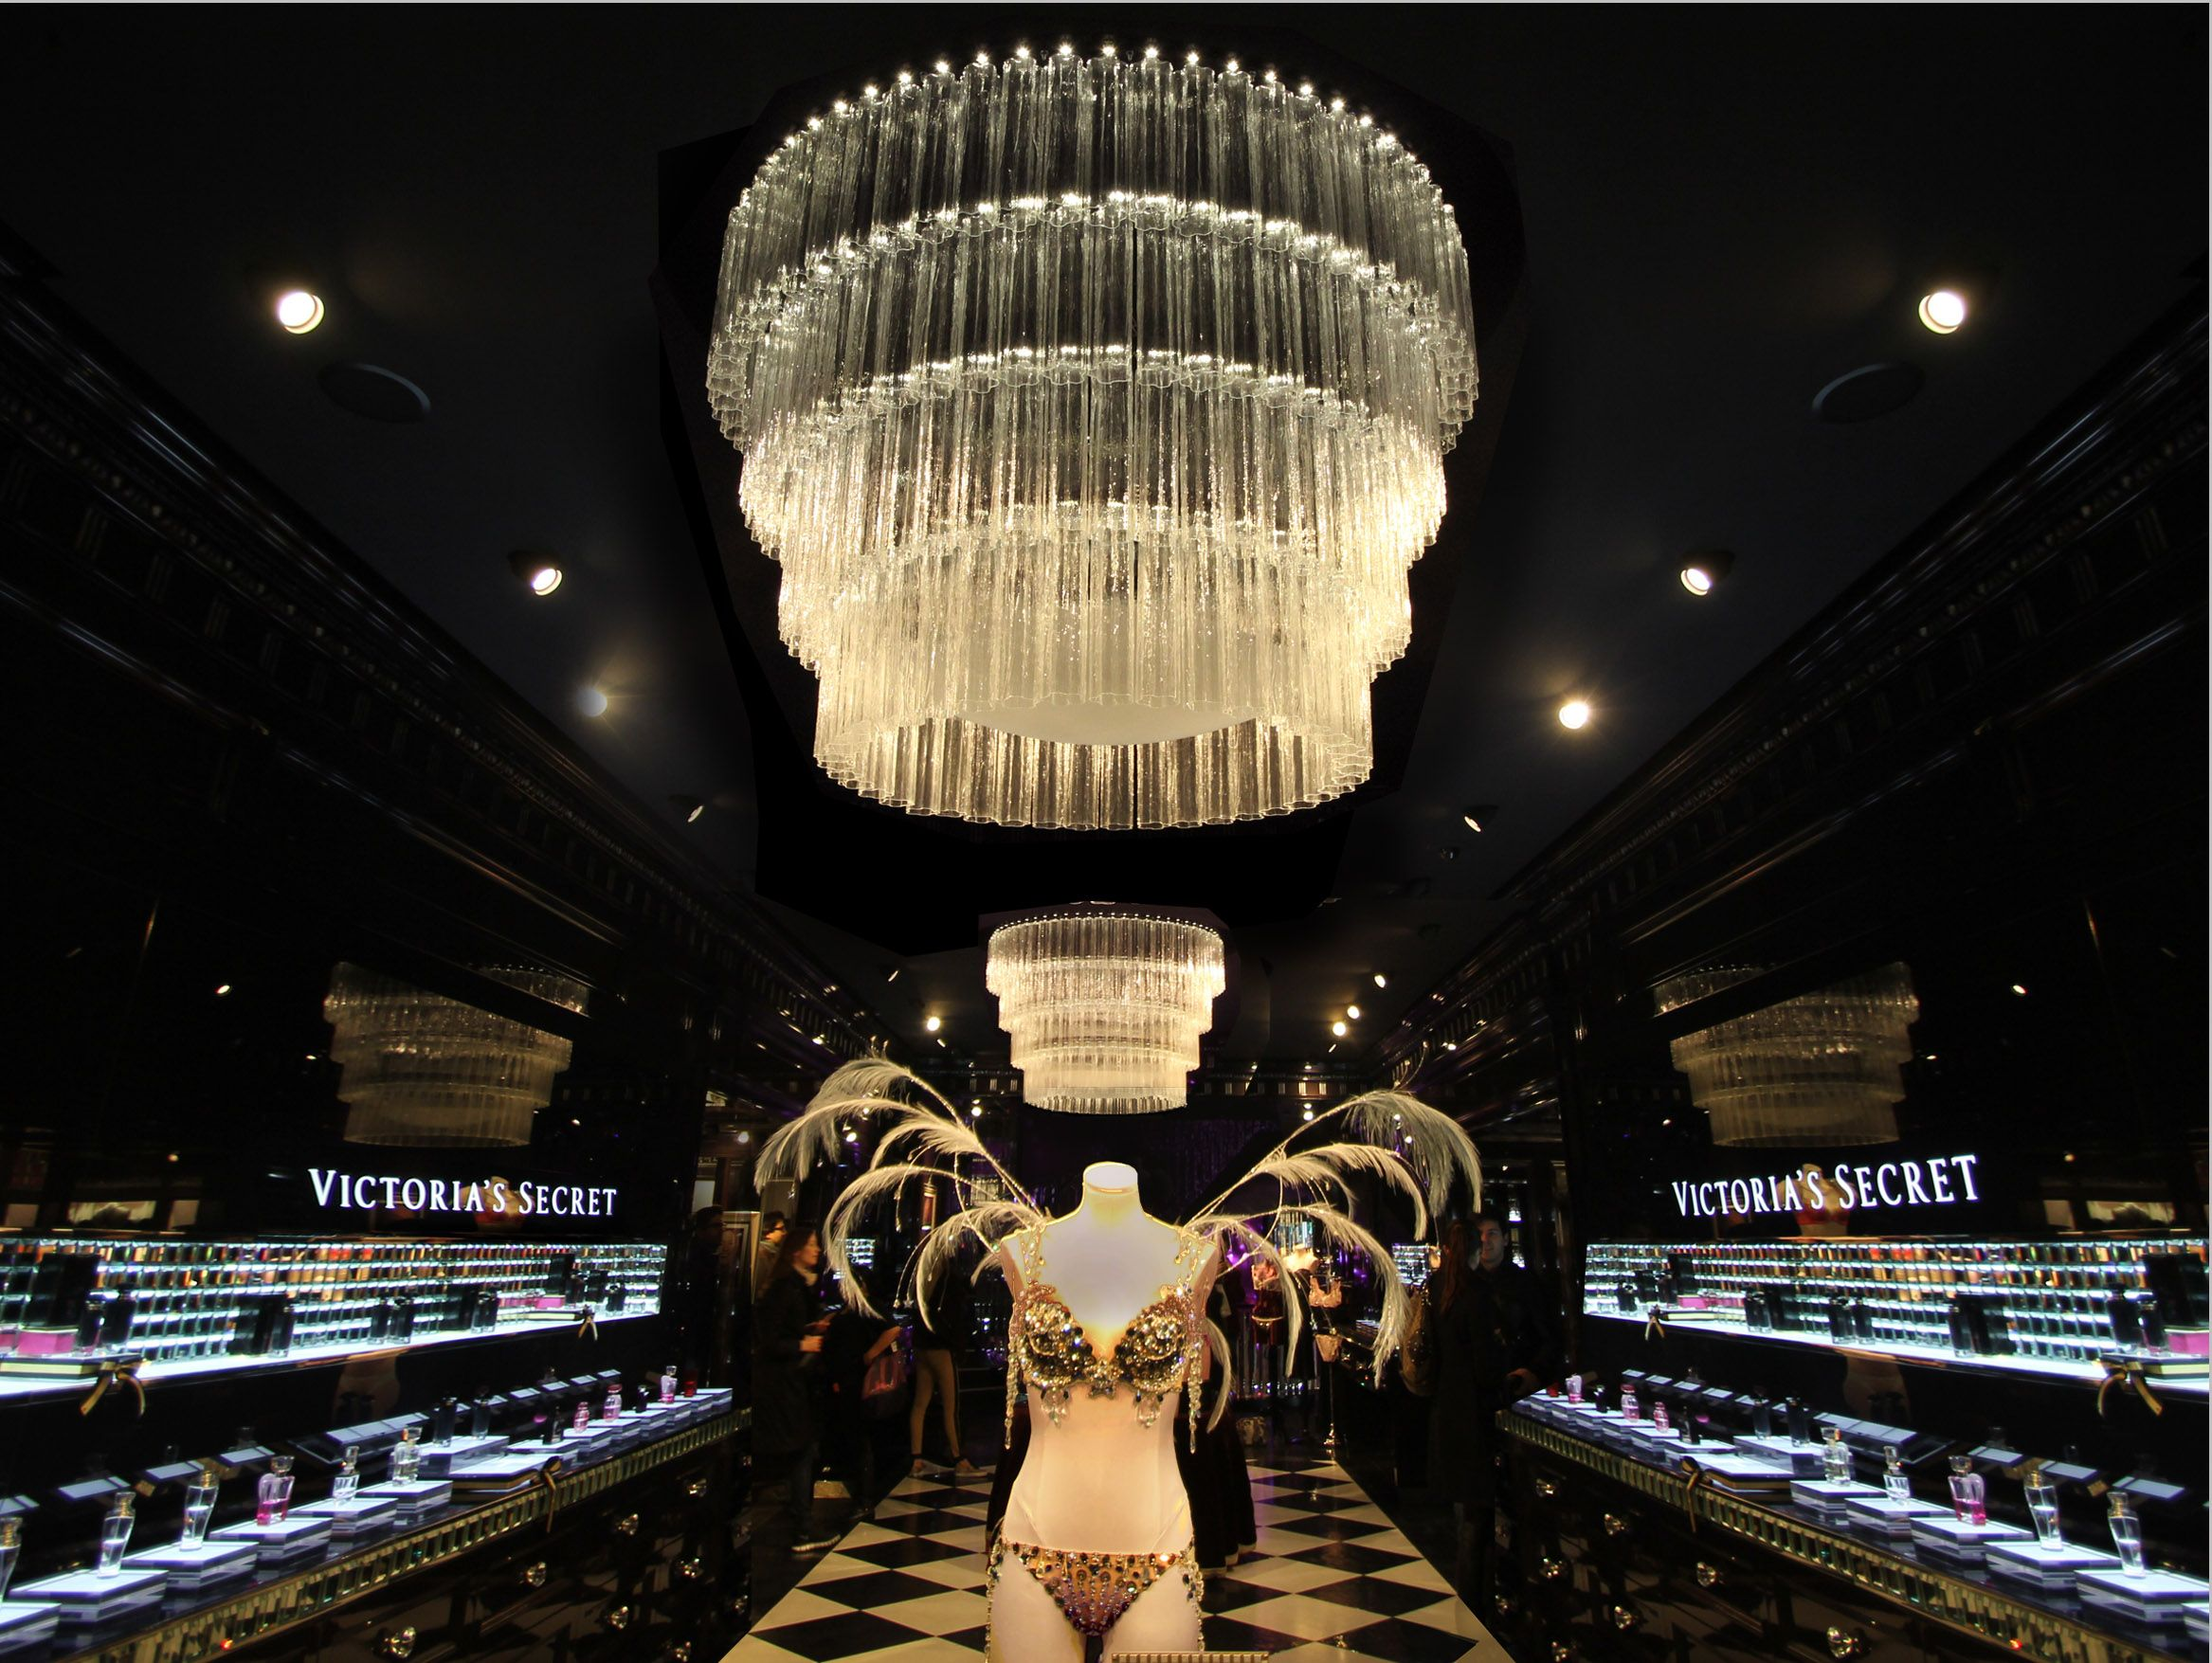 FormRoom for Victorias Secret – Giant Chandeliers